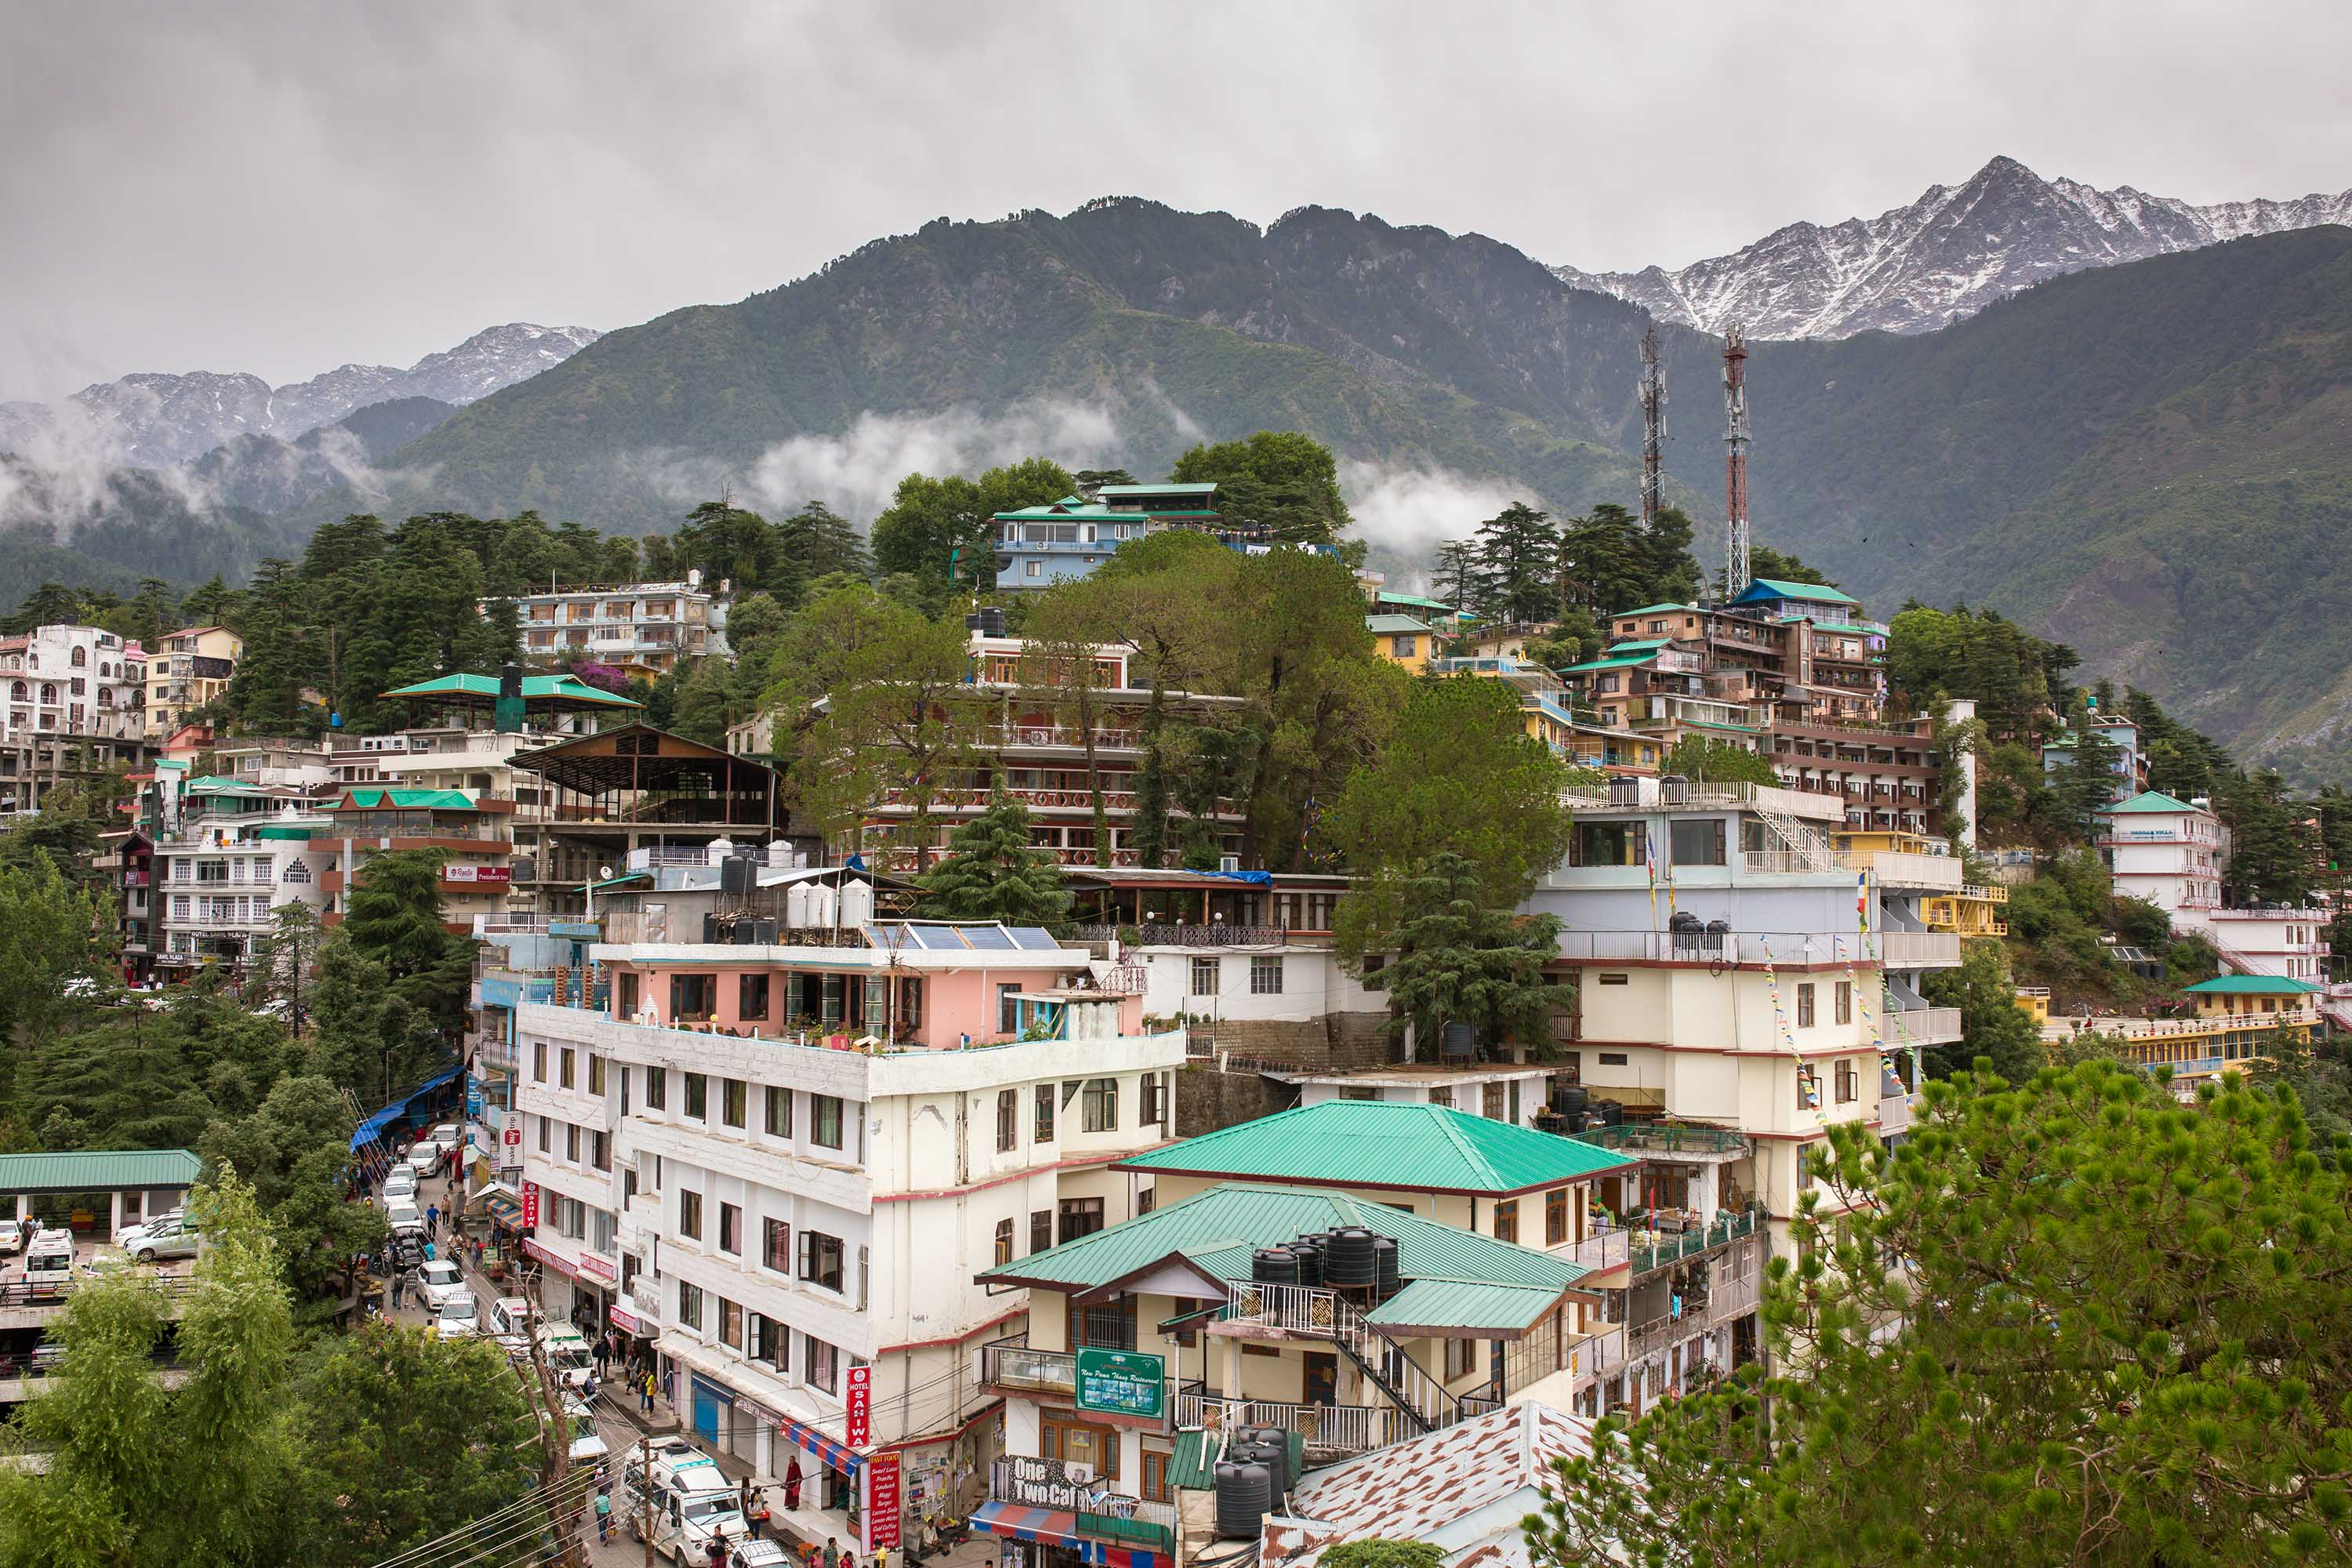 McleodGanj city surrounded by Himalaya mountains, Dharamsala, India on June 7, 2017.